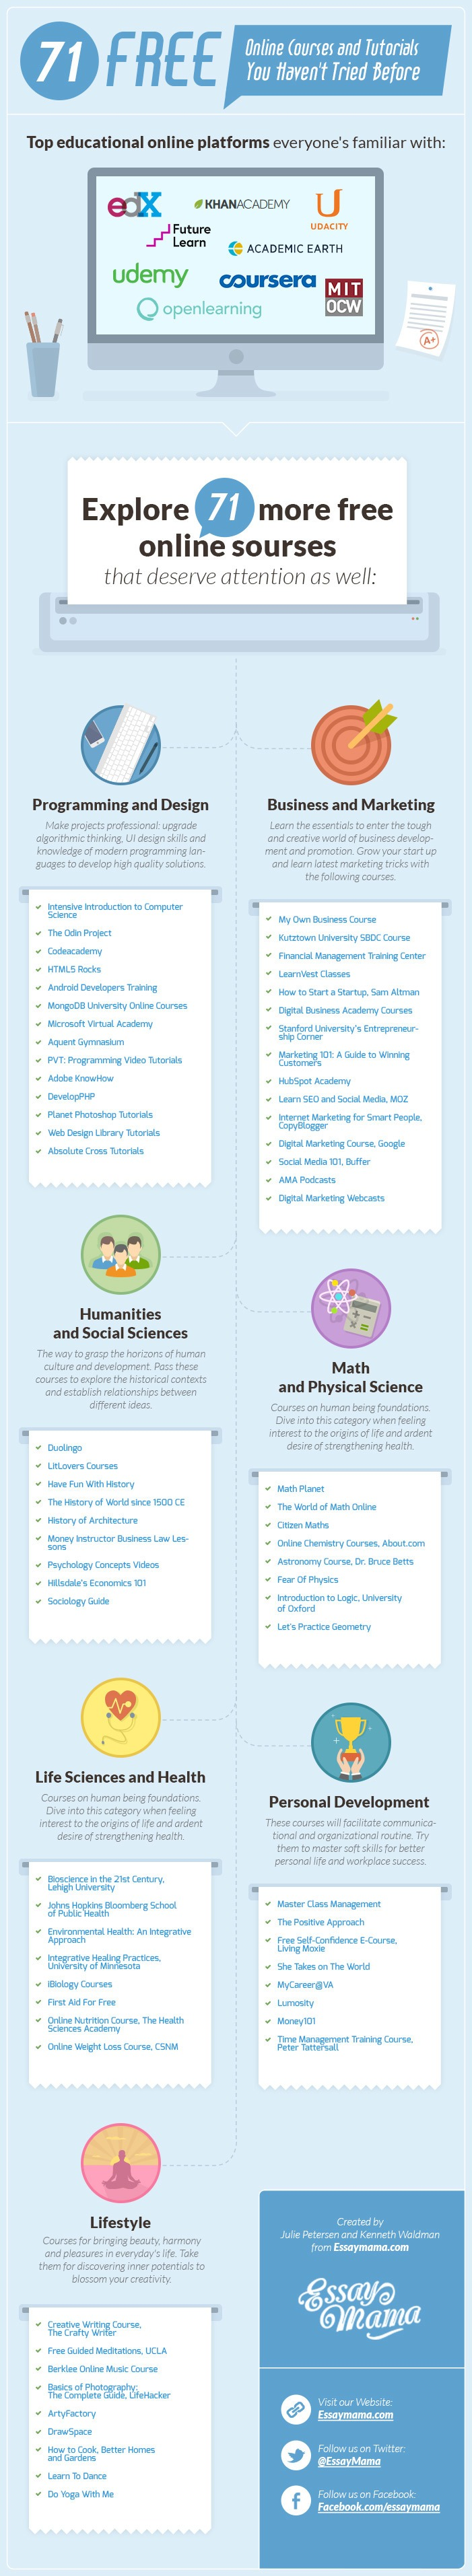 Free Online Courses and Tutorials Infographic